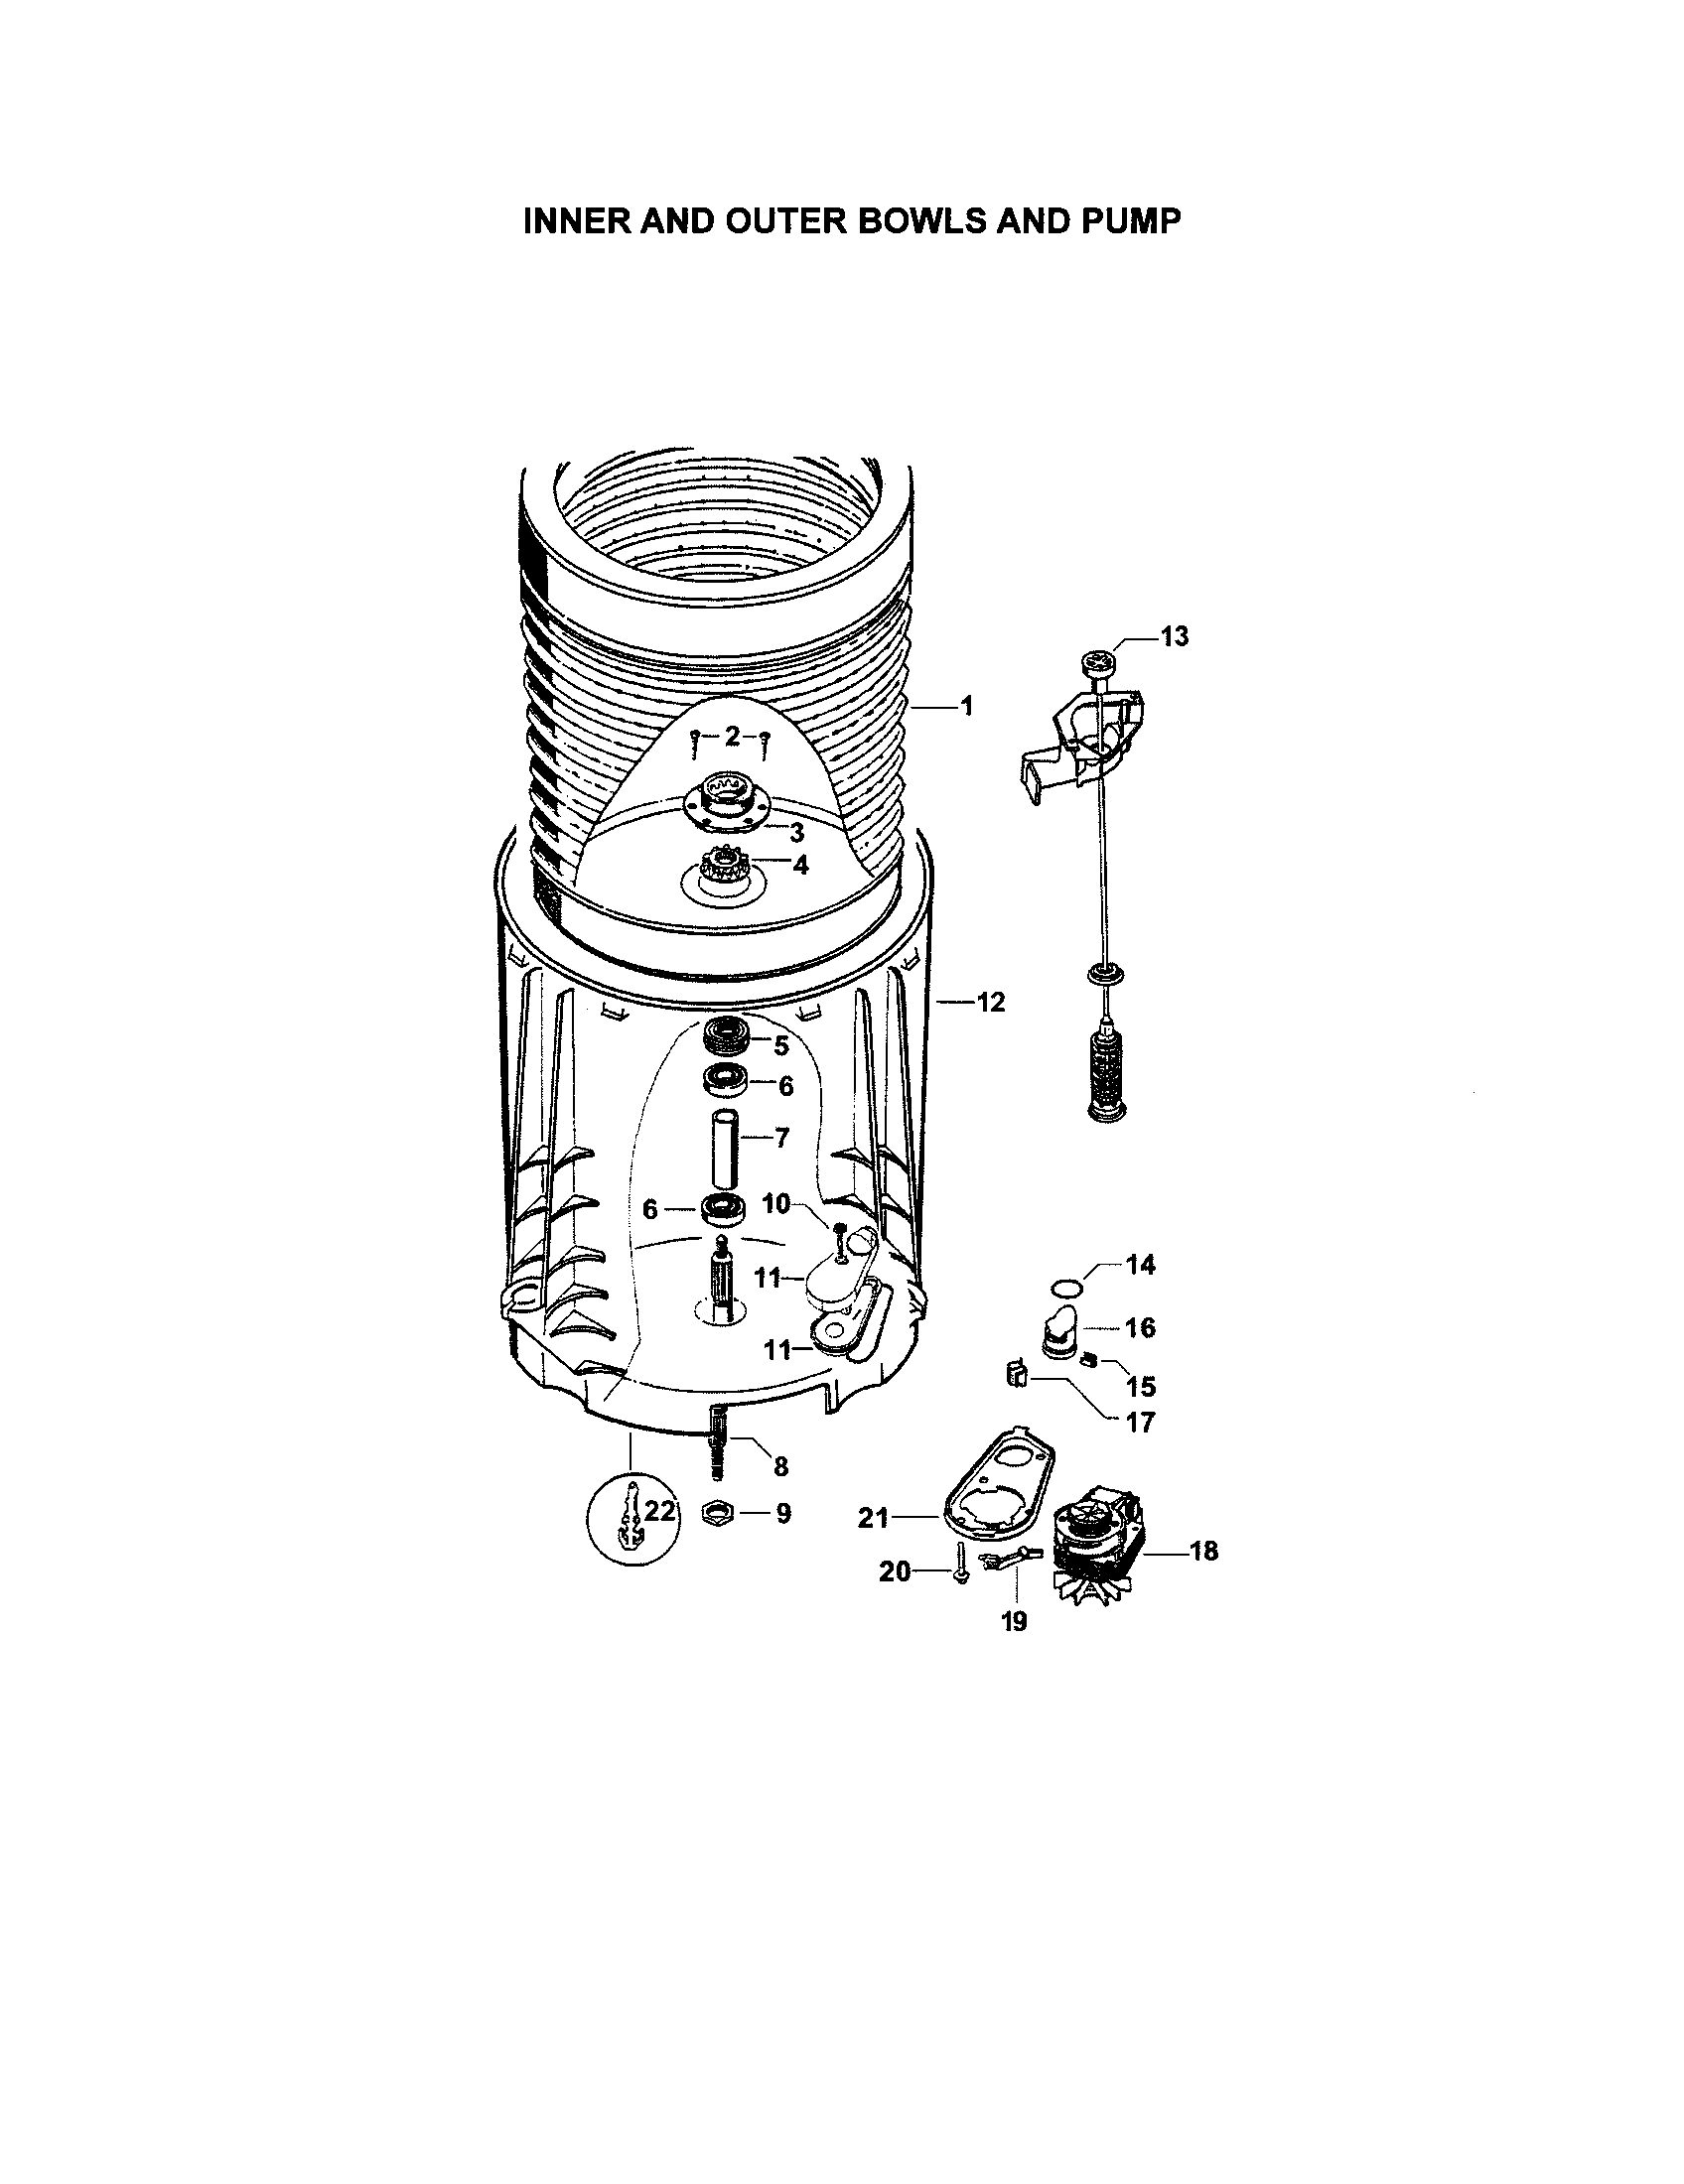 hight resolution of fisher paykel gwl11 96151 inner and outer bowls and pump diagram